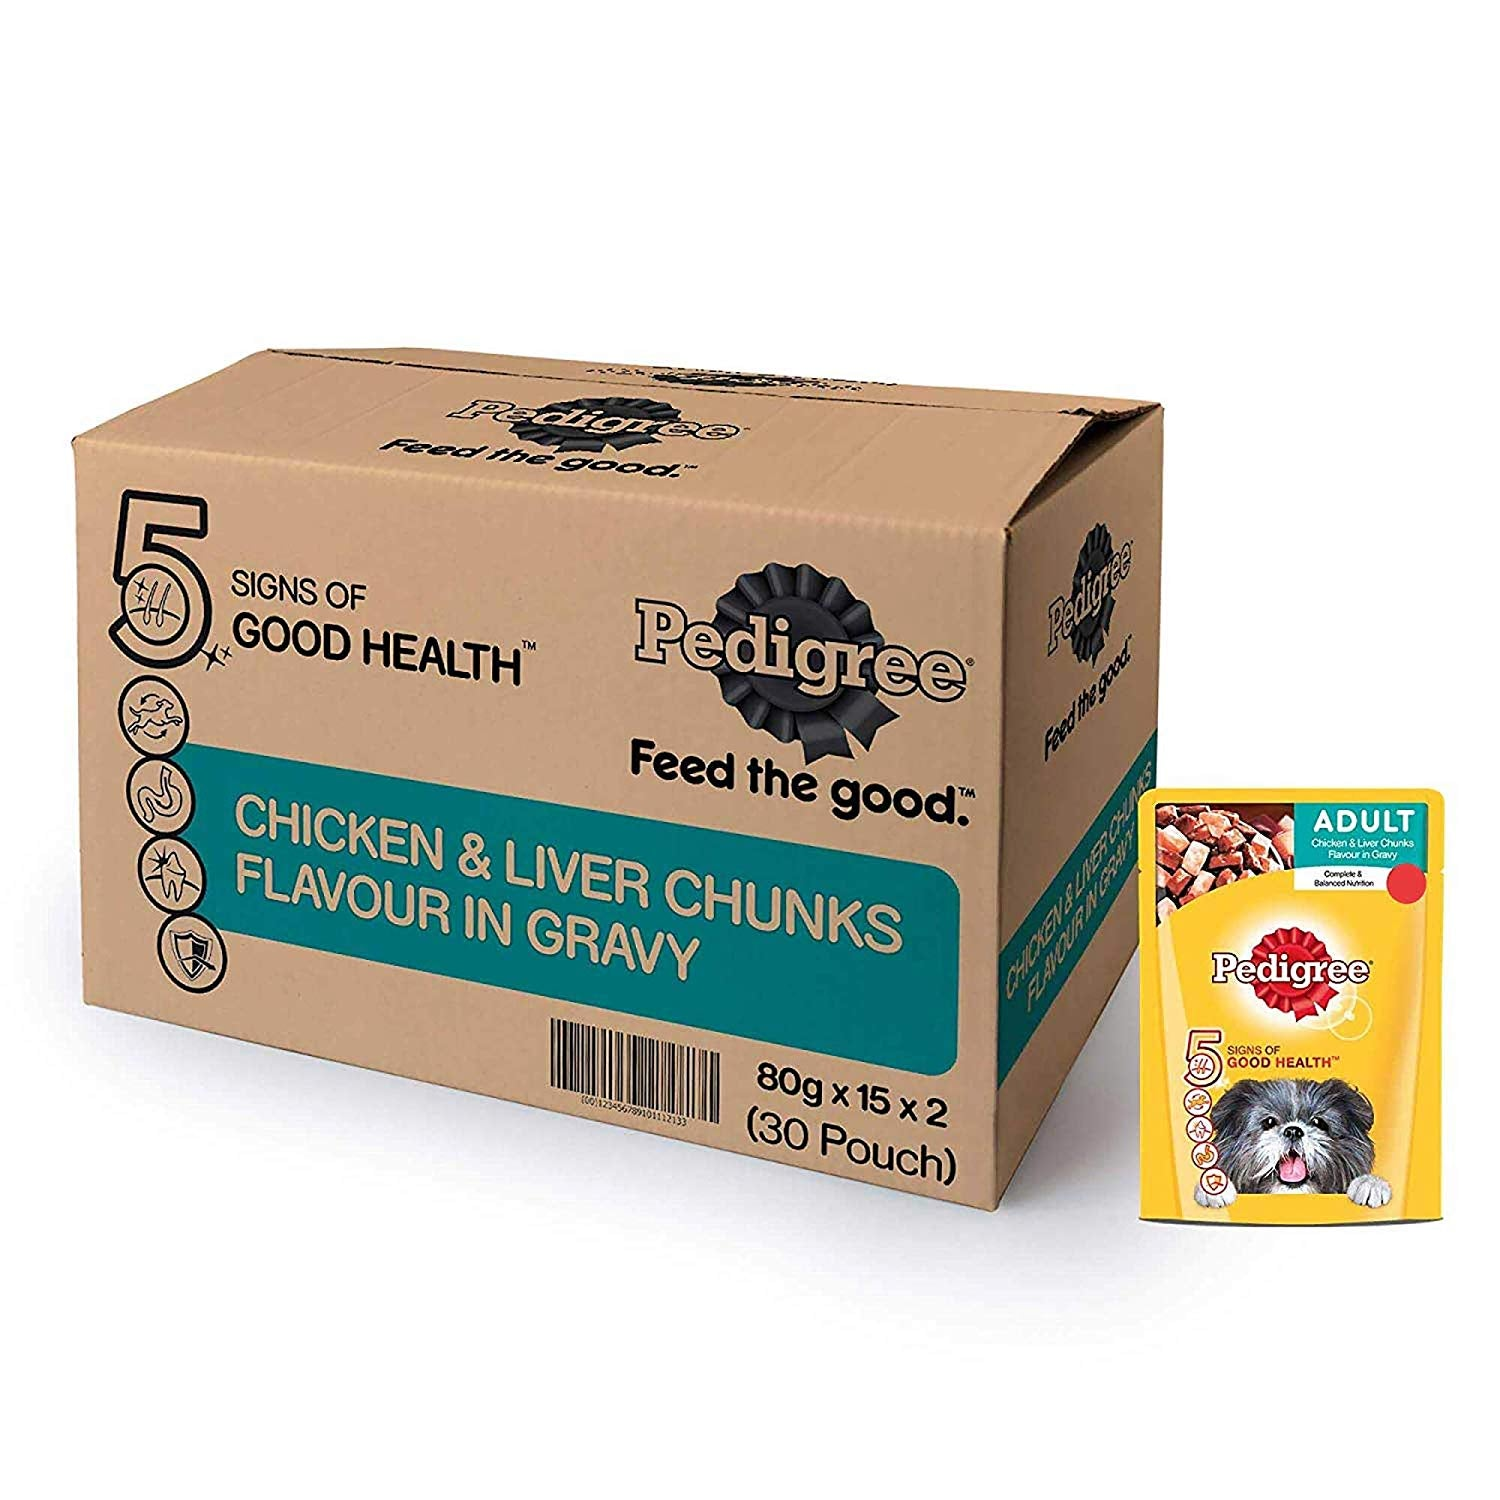 Pedigree Adult Wet Dog Food, Chicken and Liver Chunks in Gravy, 30 Pouches (30x80g) - Pet Chum